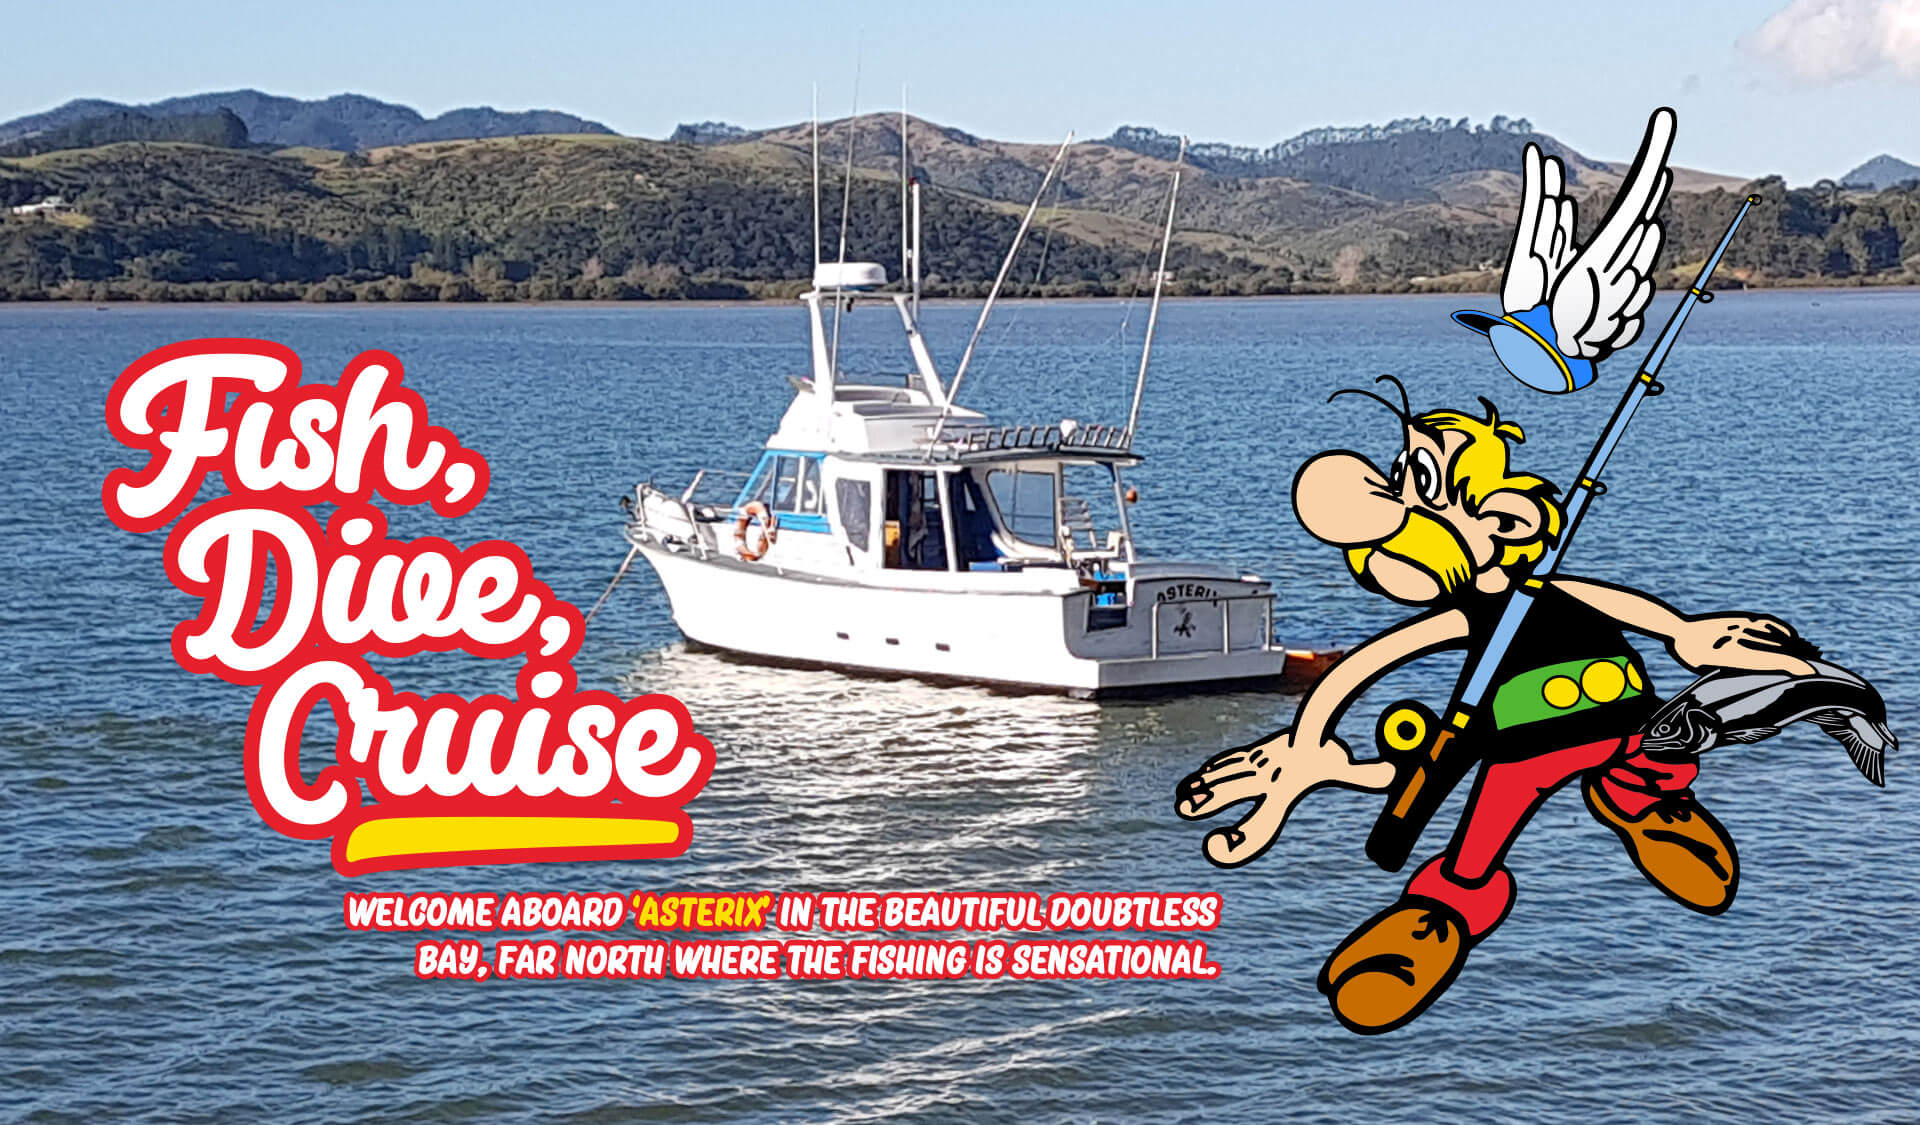 Doubtless Bay Charters, Fishing Charter in Doubtless Bay, Far North, Northland.